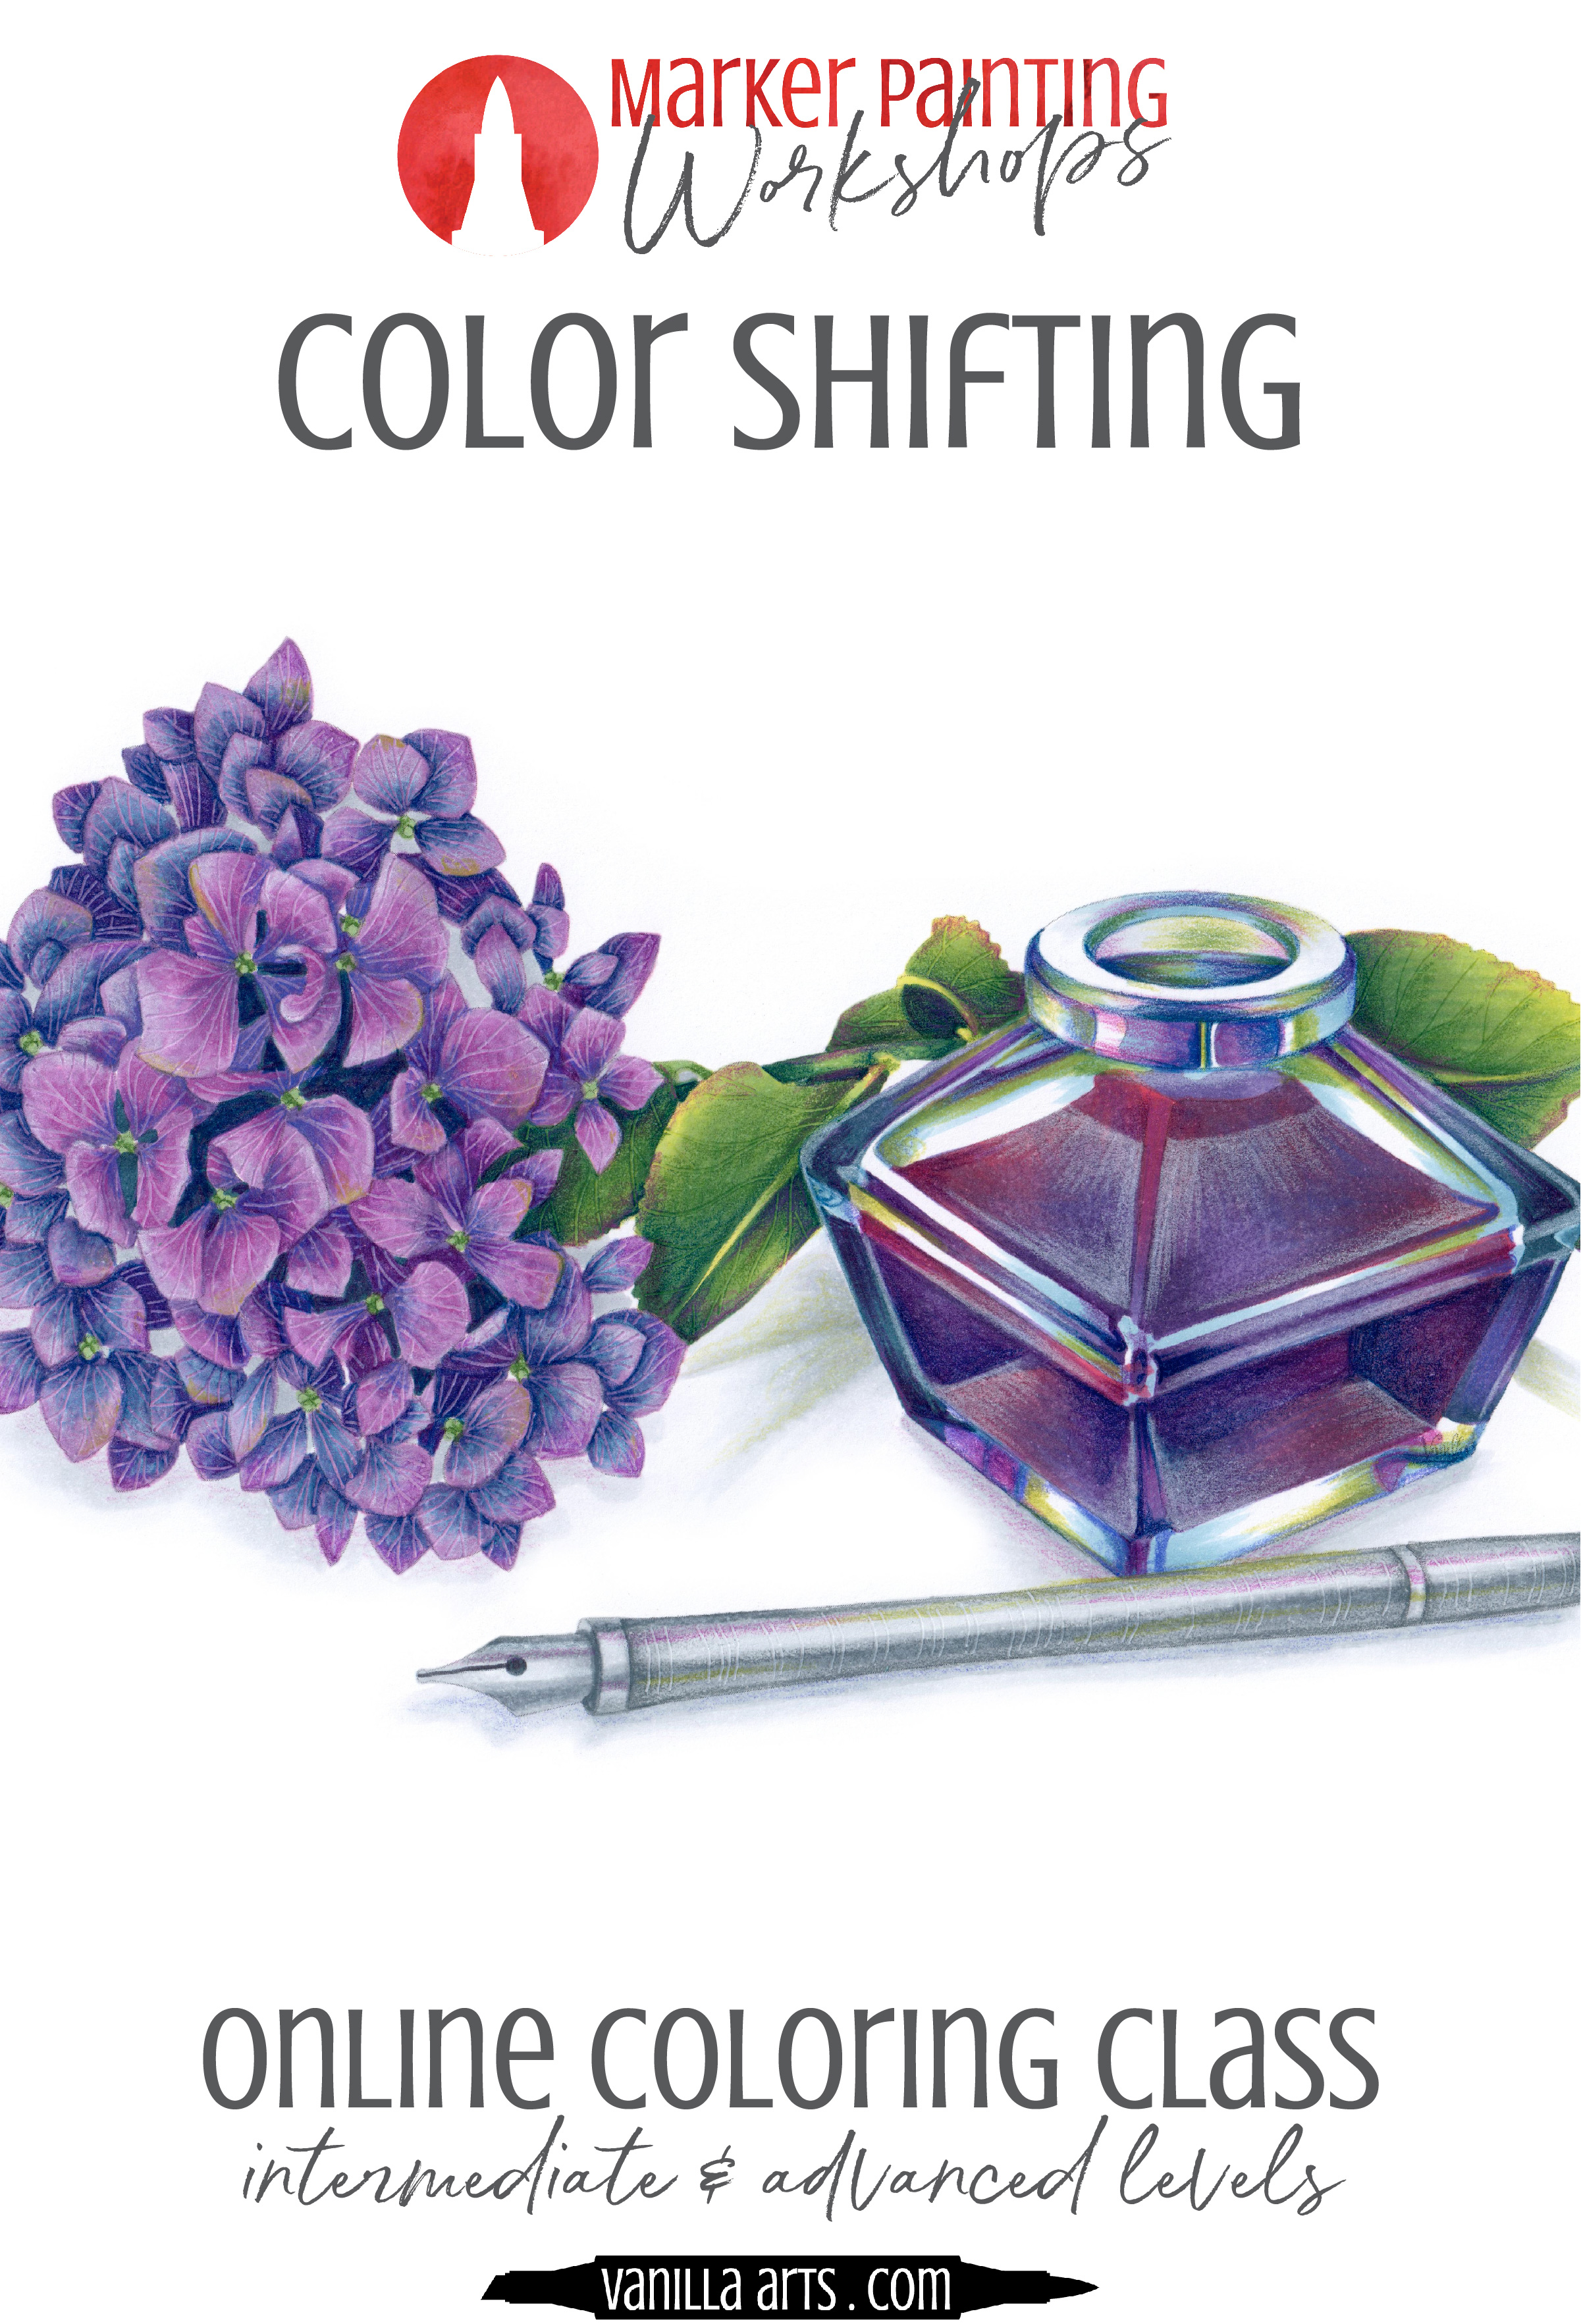 """Marker Painting Workshops. Learn to add realism and artistry to your Copic Marker or colored pencil adult coloring projects. """"Tree Frog"""" teaches the color sculpting process to maximize realism. 